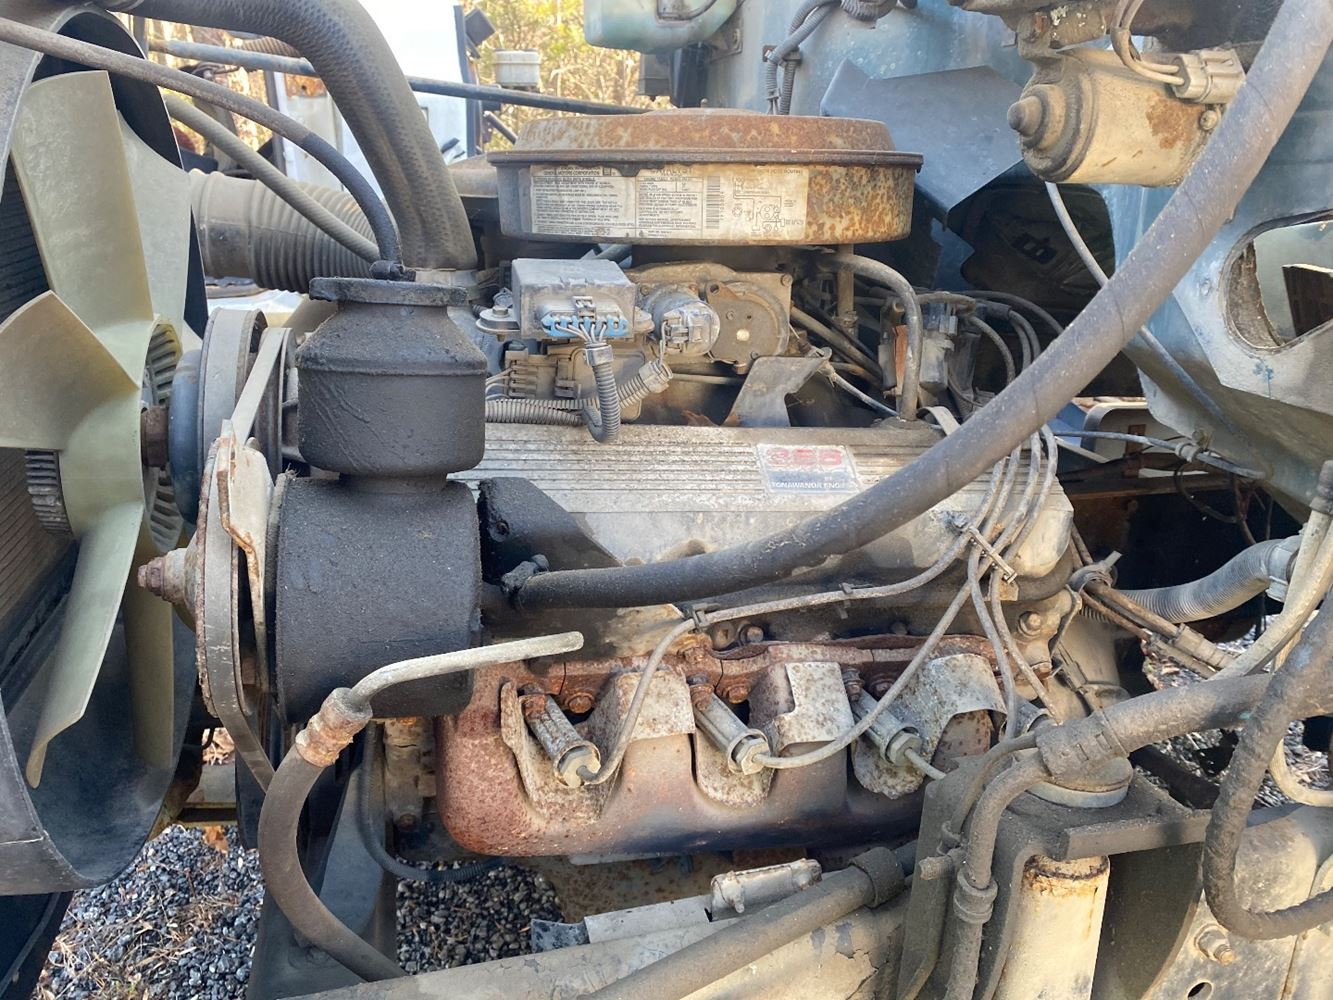 1993 GM/CHEV (HD) 366 GAS ENGINE ASSEMBLY TRUCK PARTS #690533